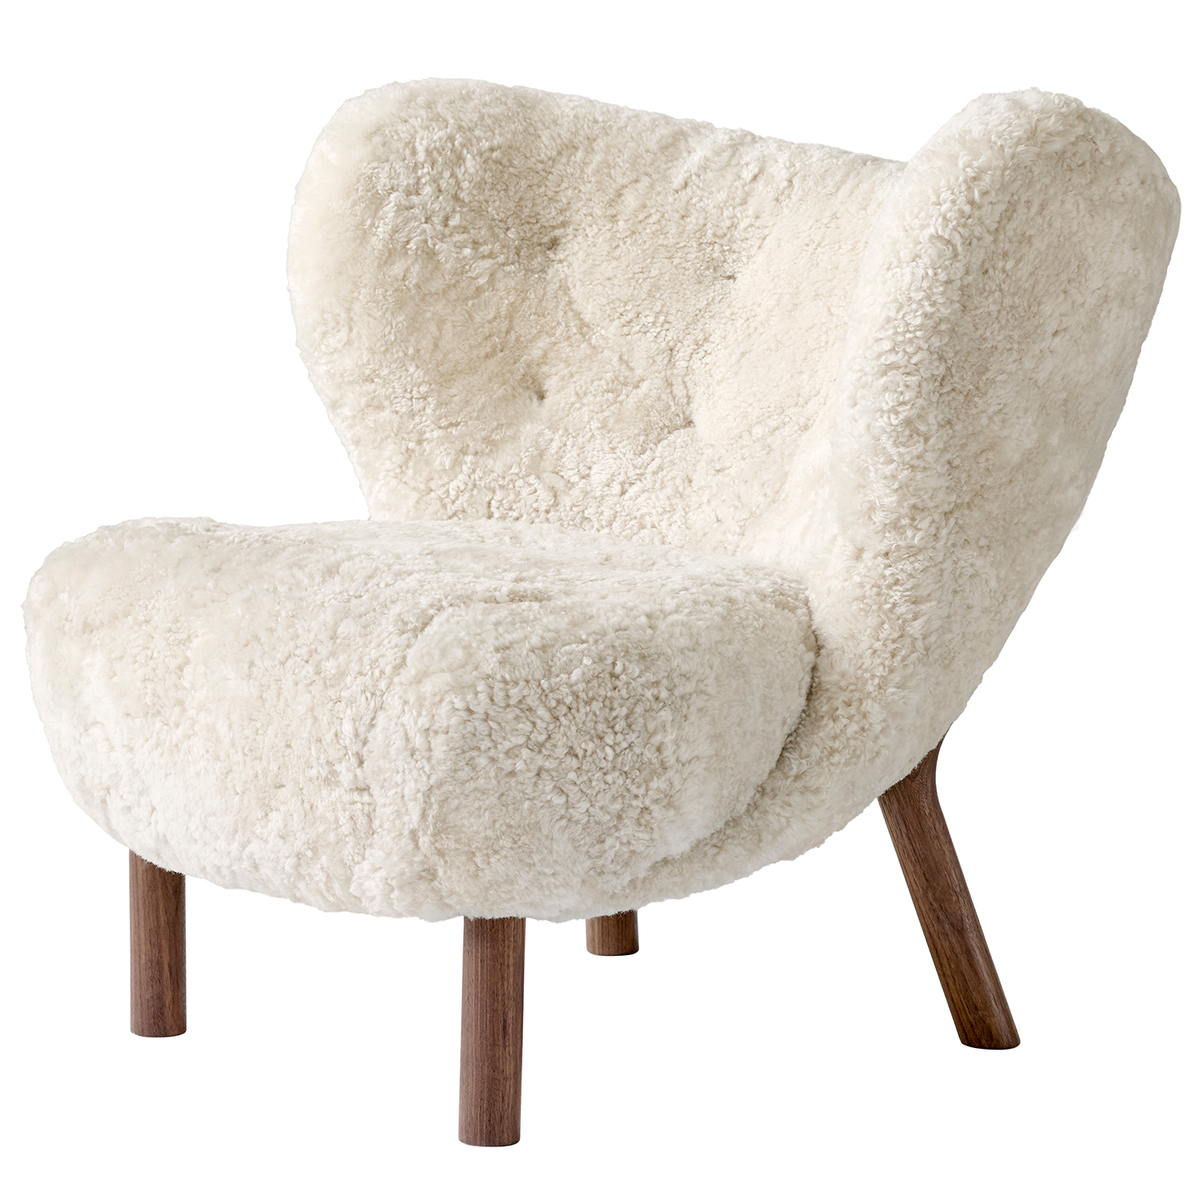 &Tradition Little Petra lounge chair, Moonlight sheepskin - walnut from &Tradition